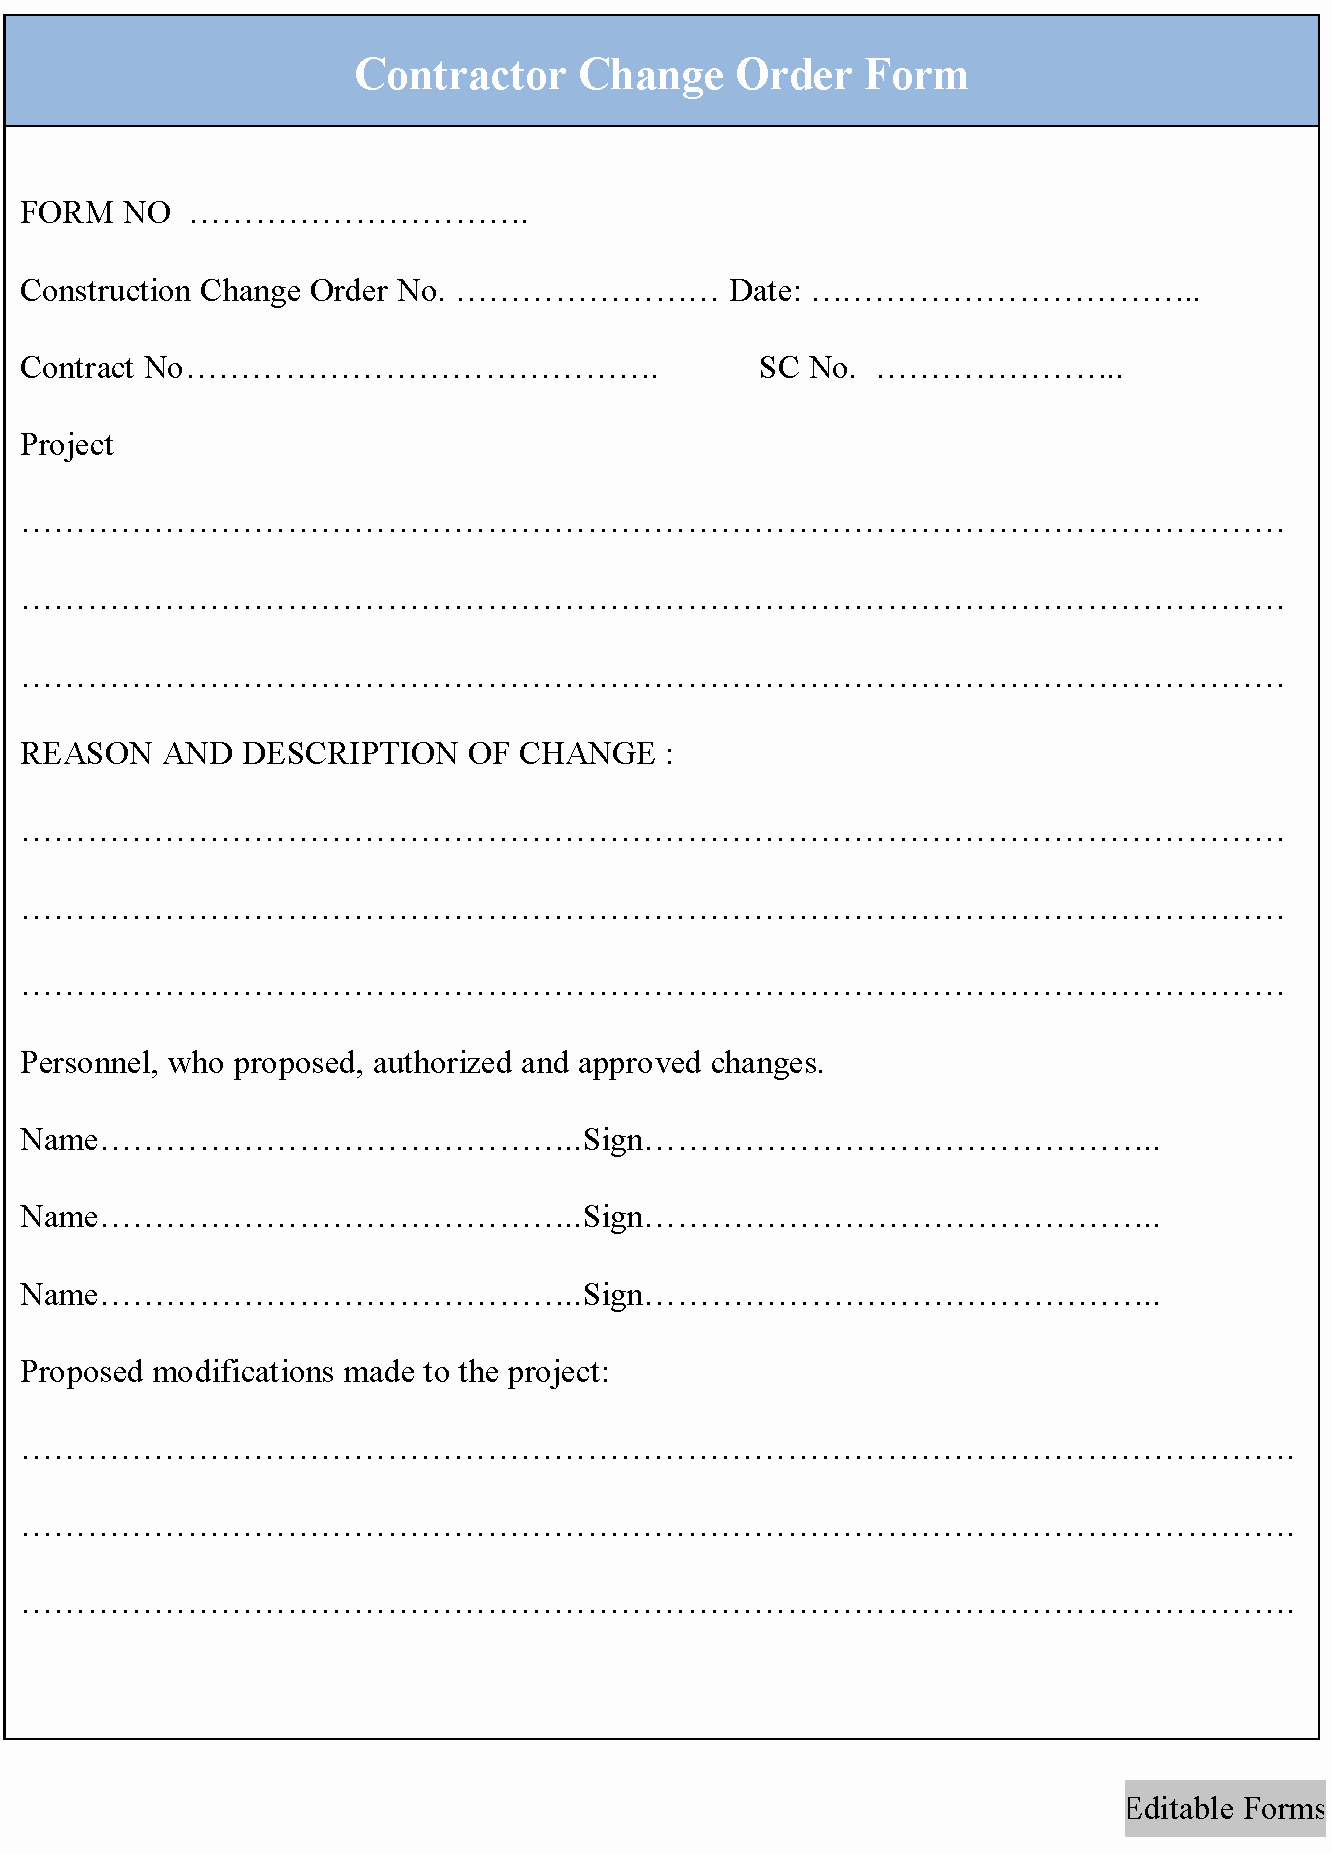 Construction Change order form Awesome Contractor Change order form